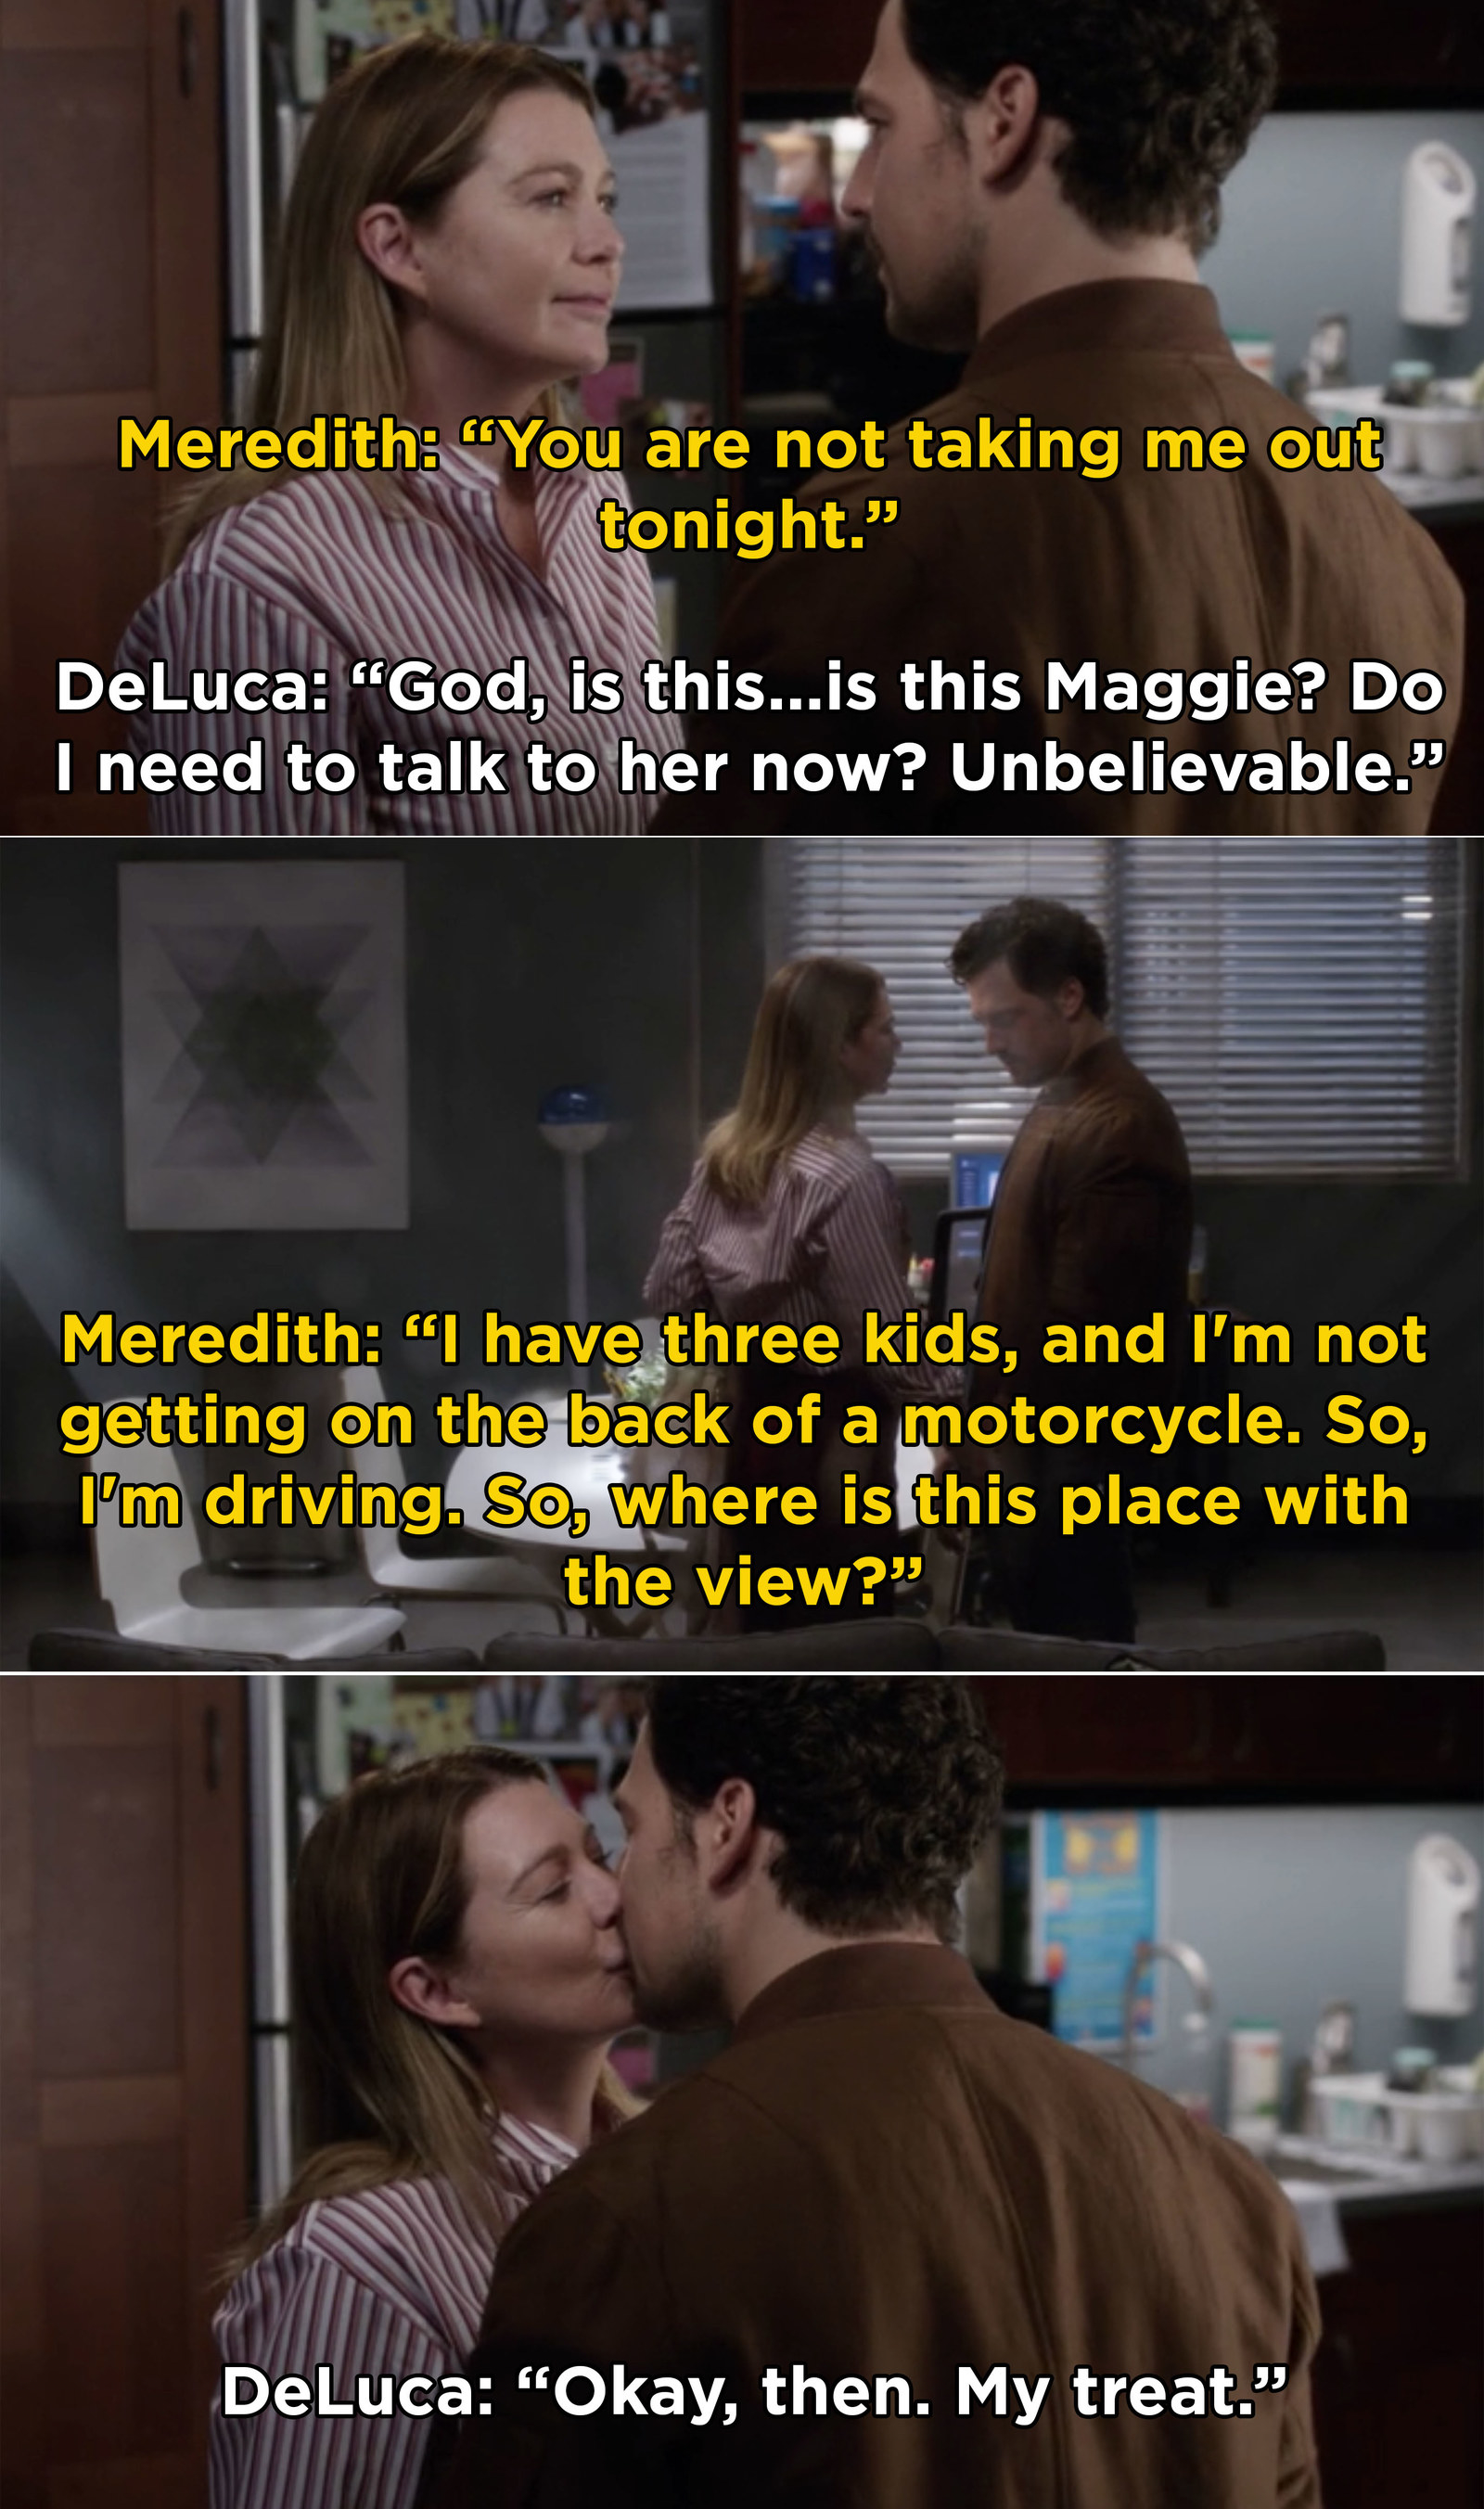 Also, Meredith and DeLuca ~officially~ got together when they went on their first date. And, in case you're wondering, I'm 100% on board with this couple now.